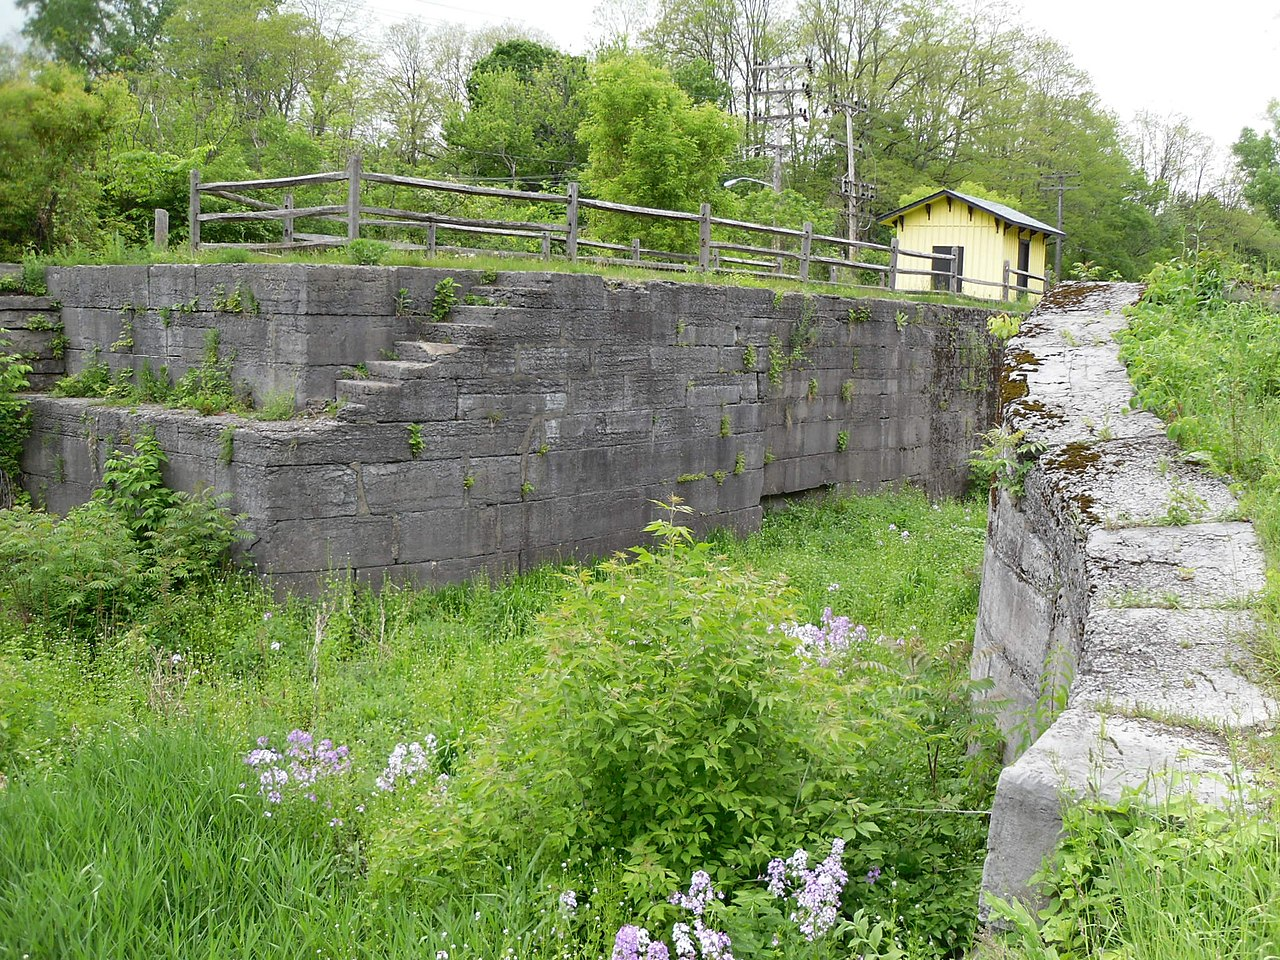 fileenlarged double lock no 23 old erie canal may 10